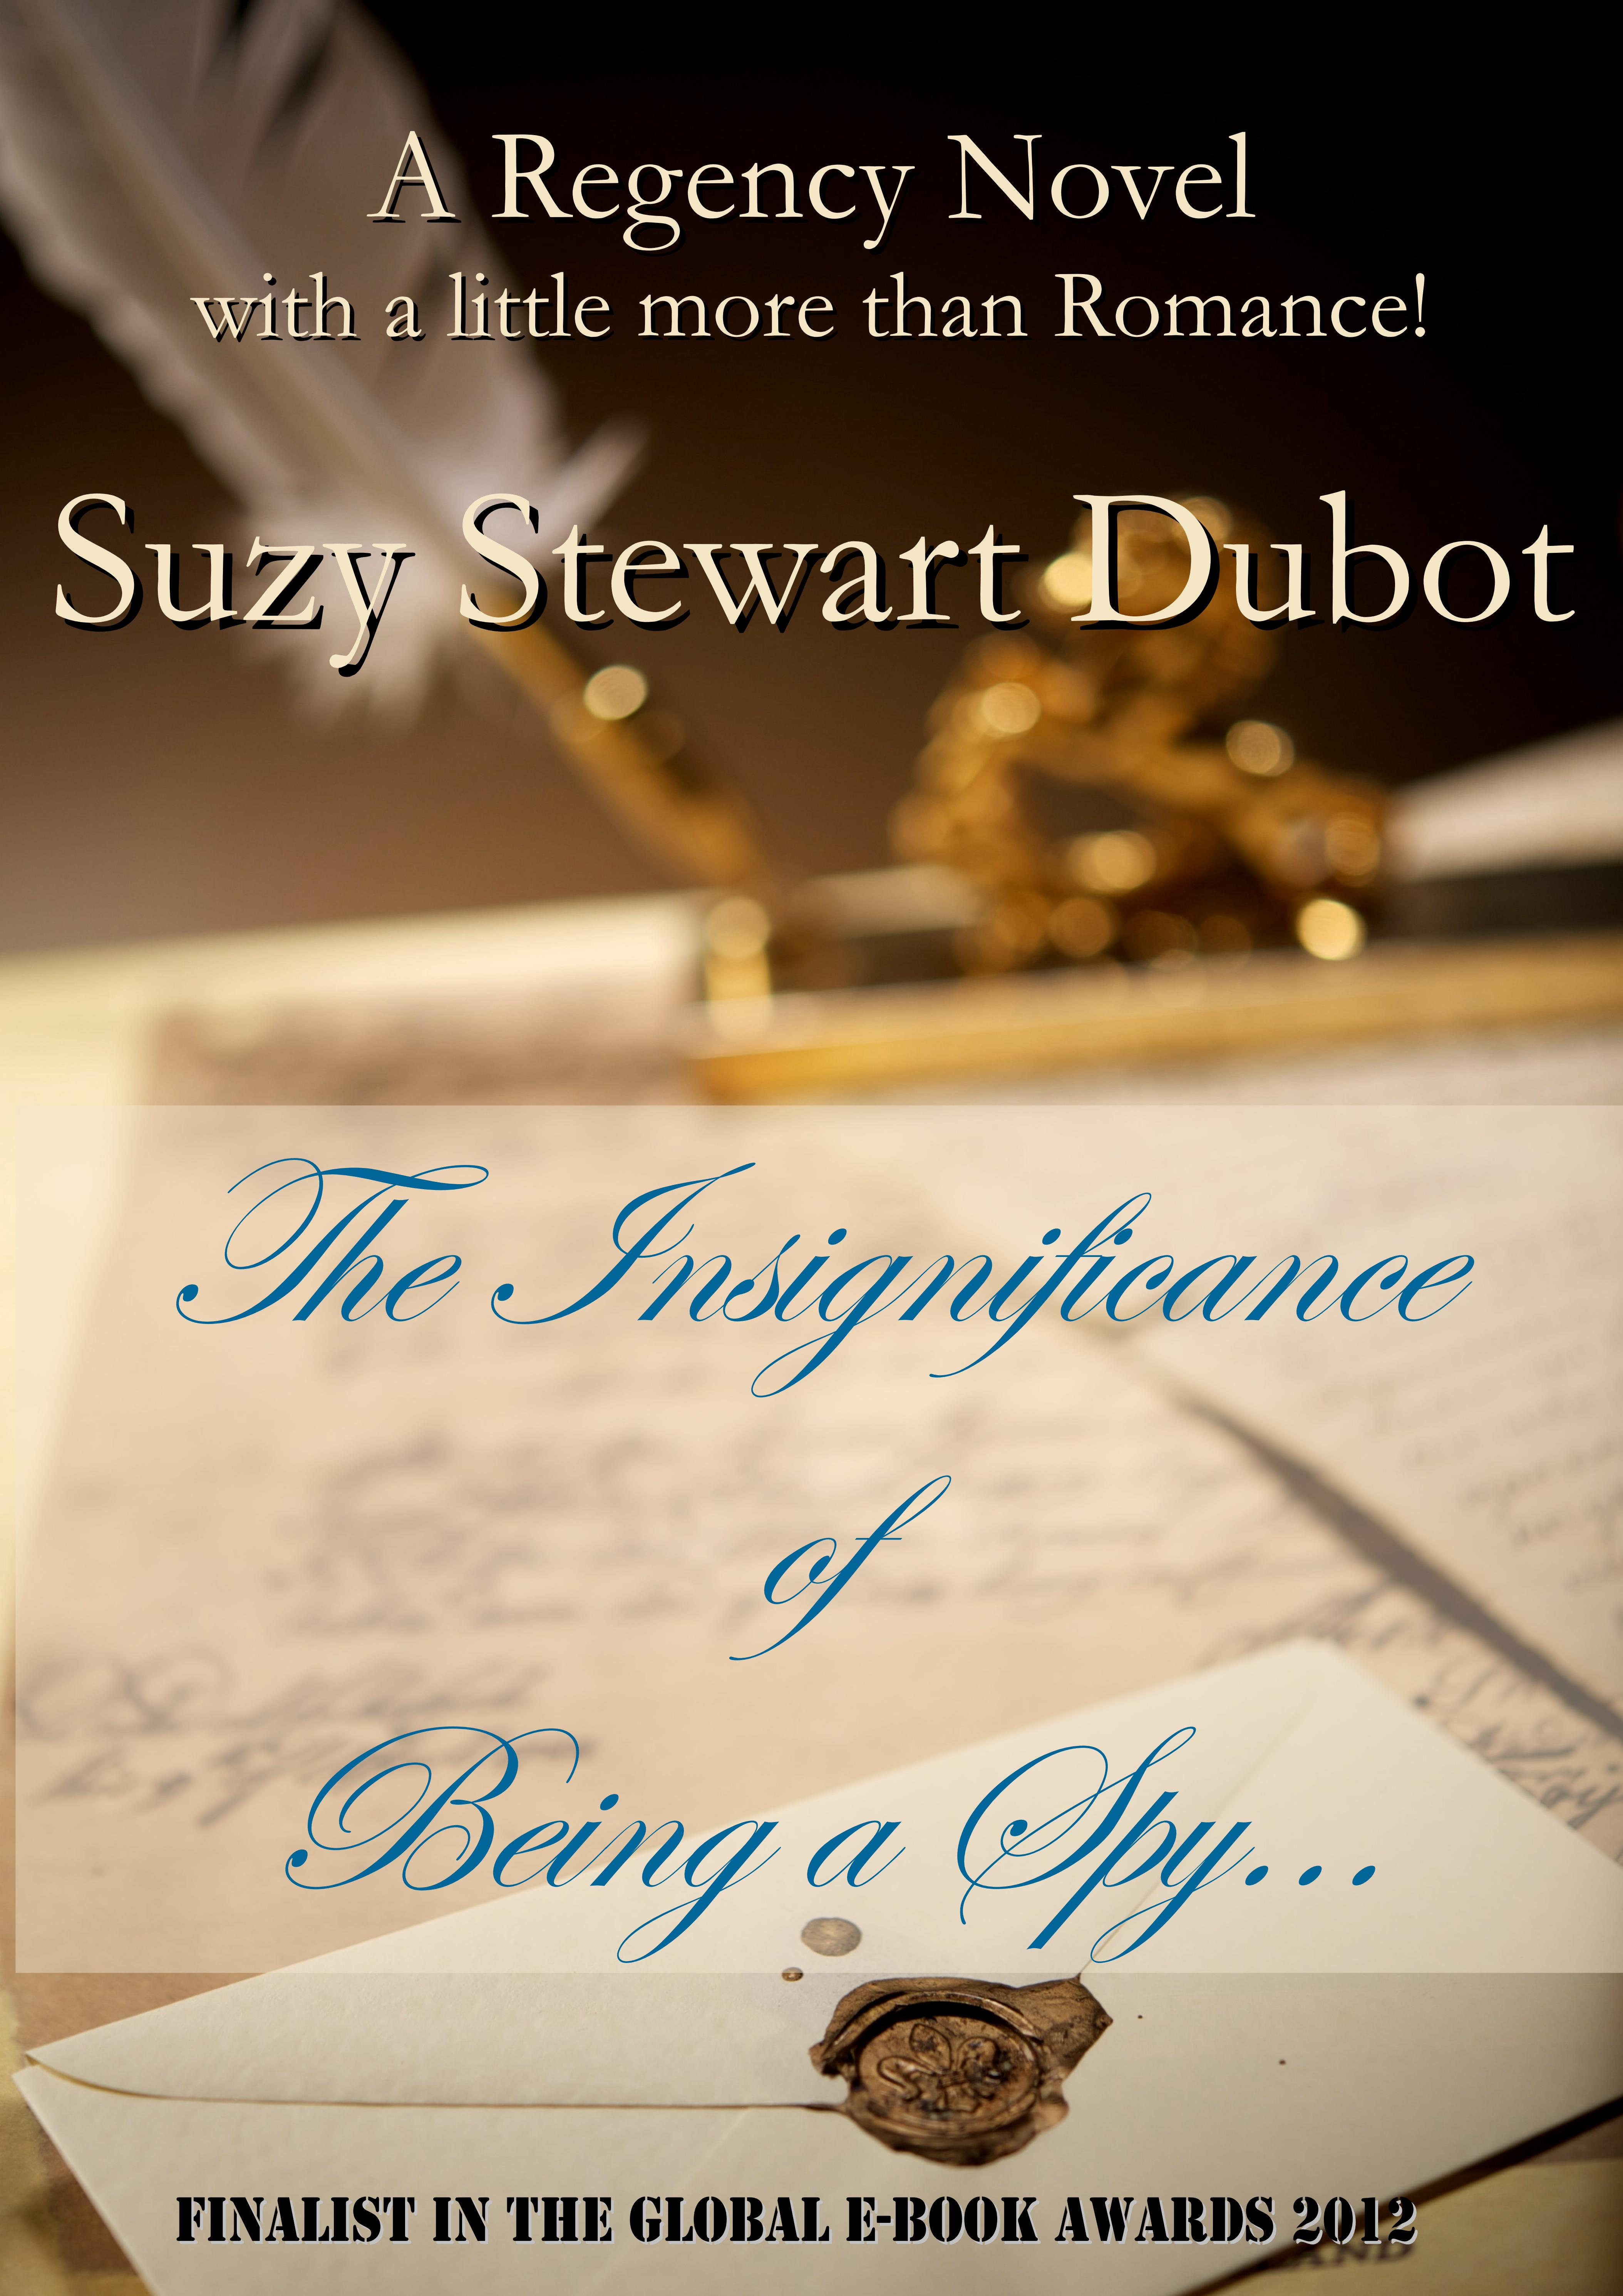 The Insignificance of Being a Spy...